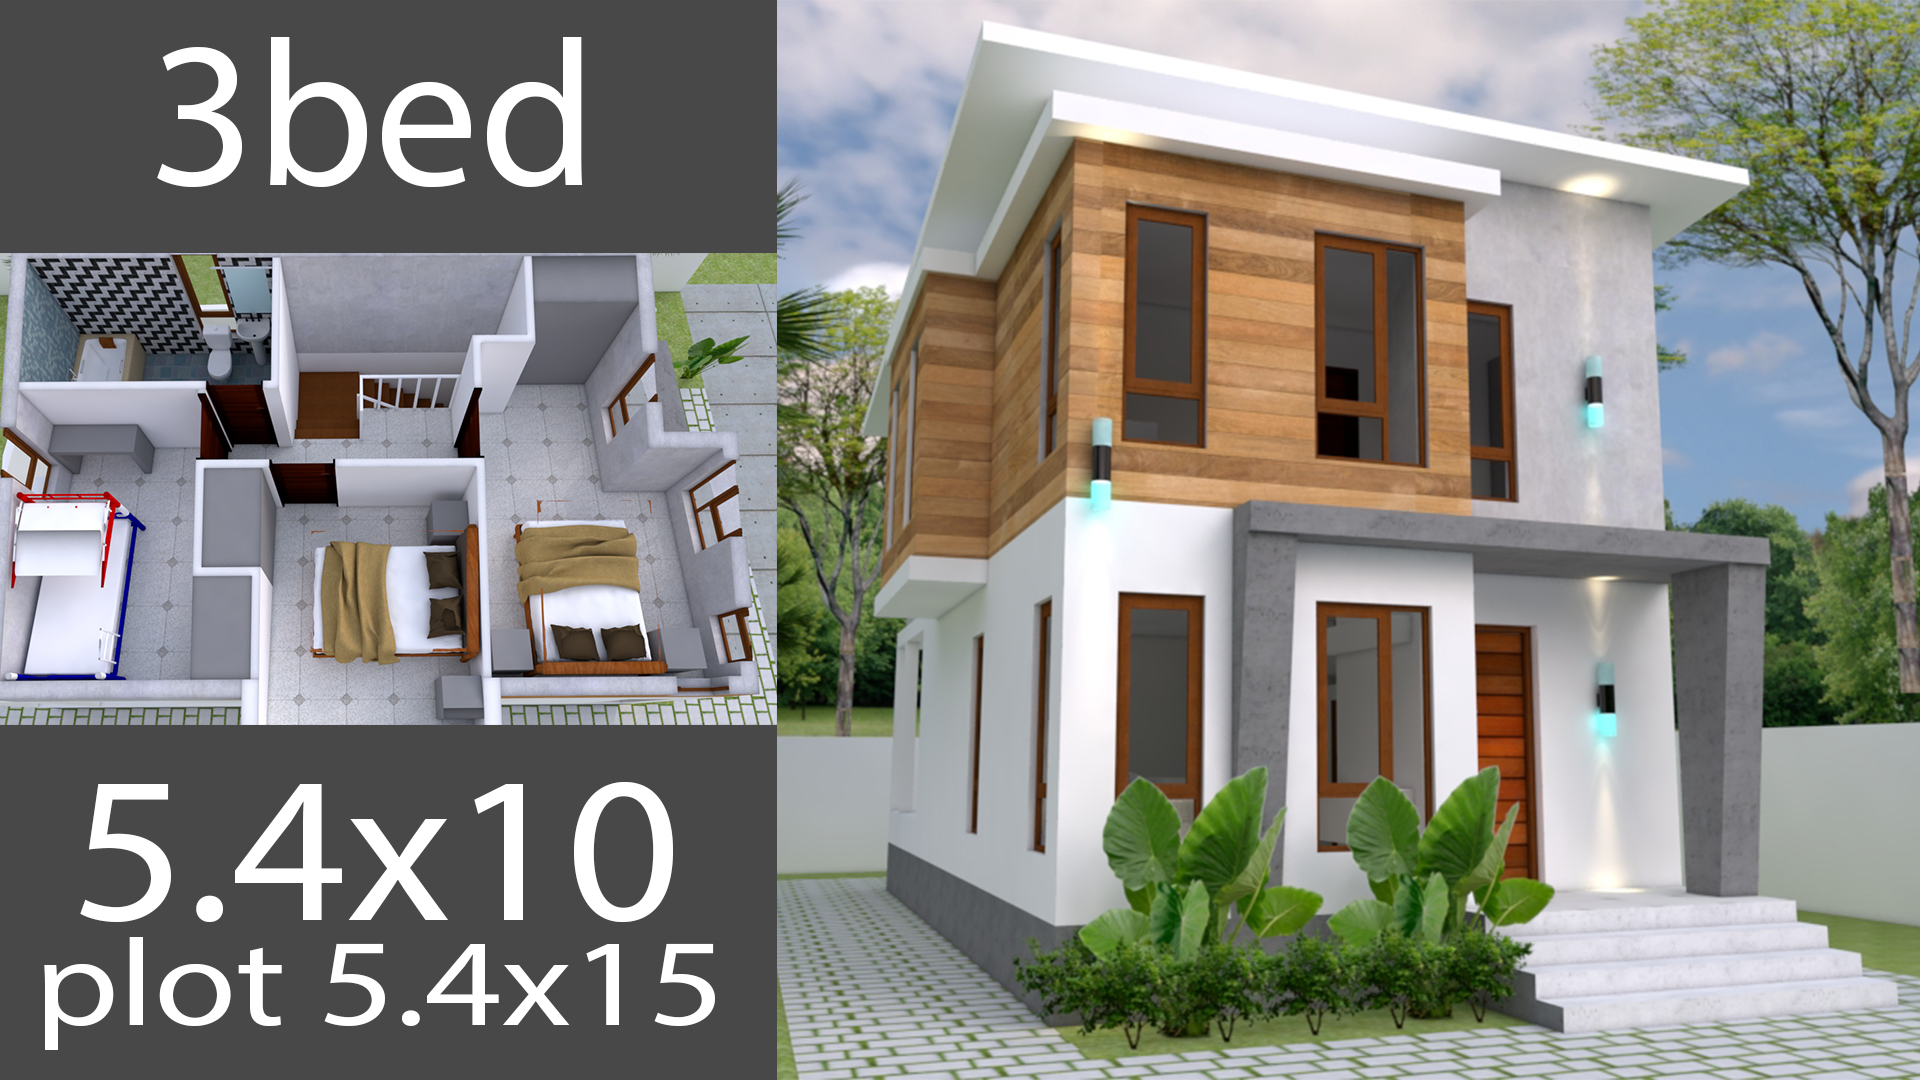 Small Home design Plan 5.4x10m with 3 Bedroom - SamPhoas Plan